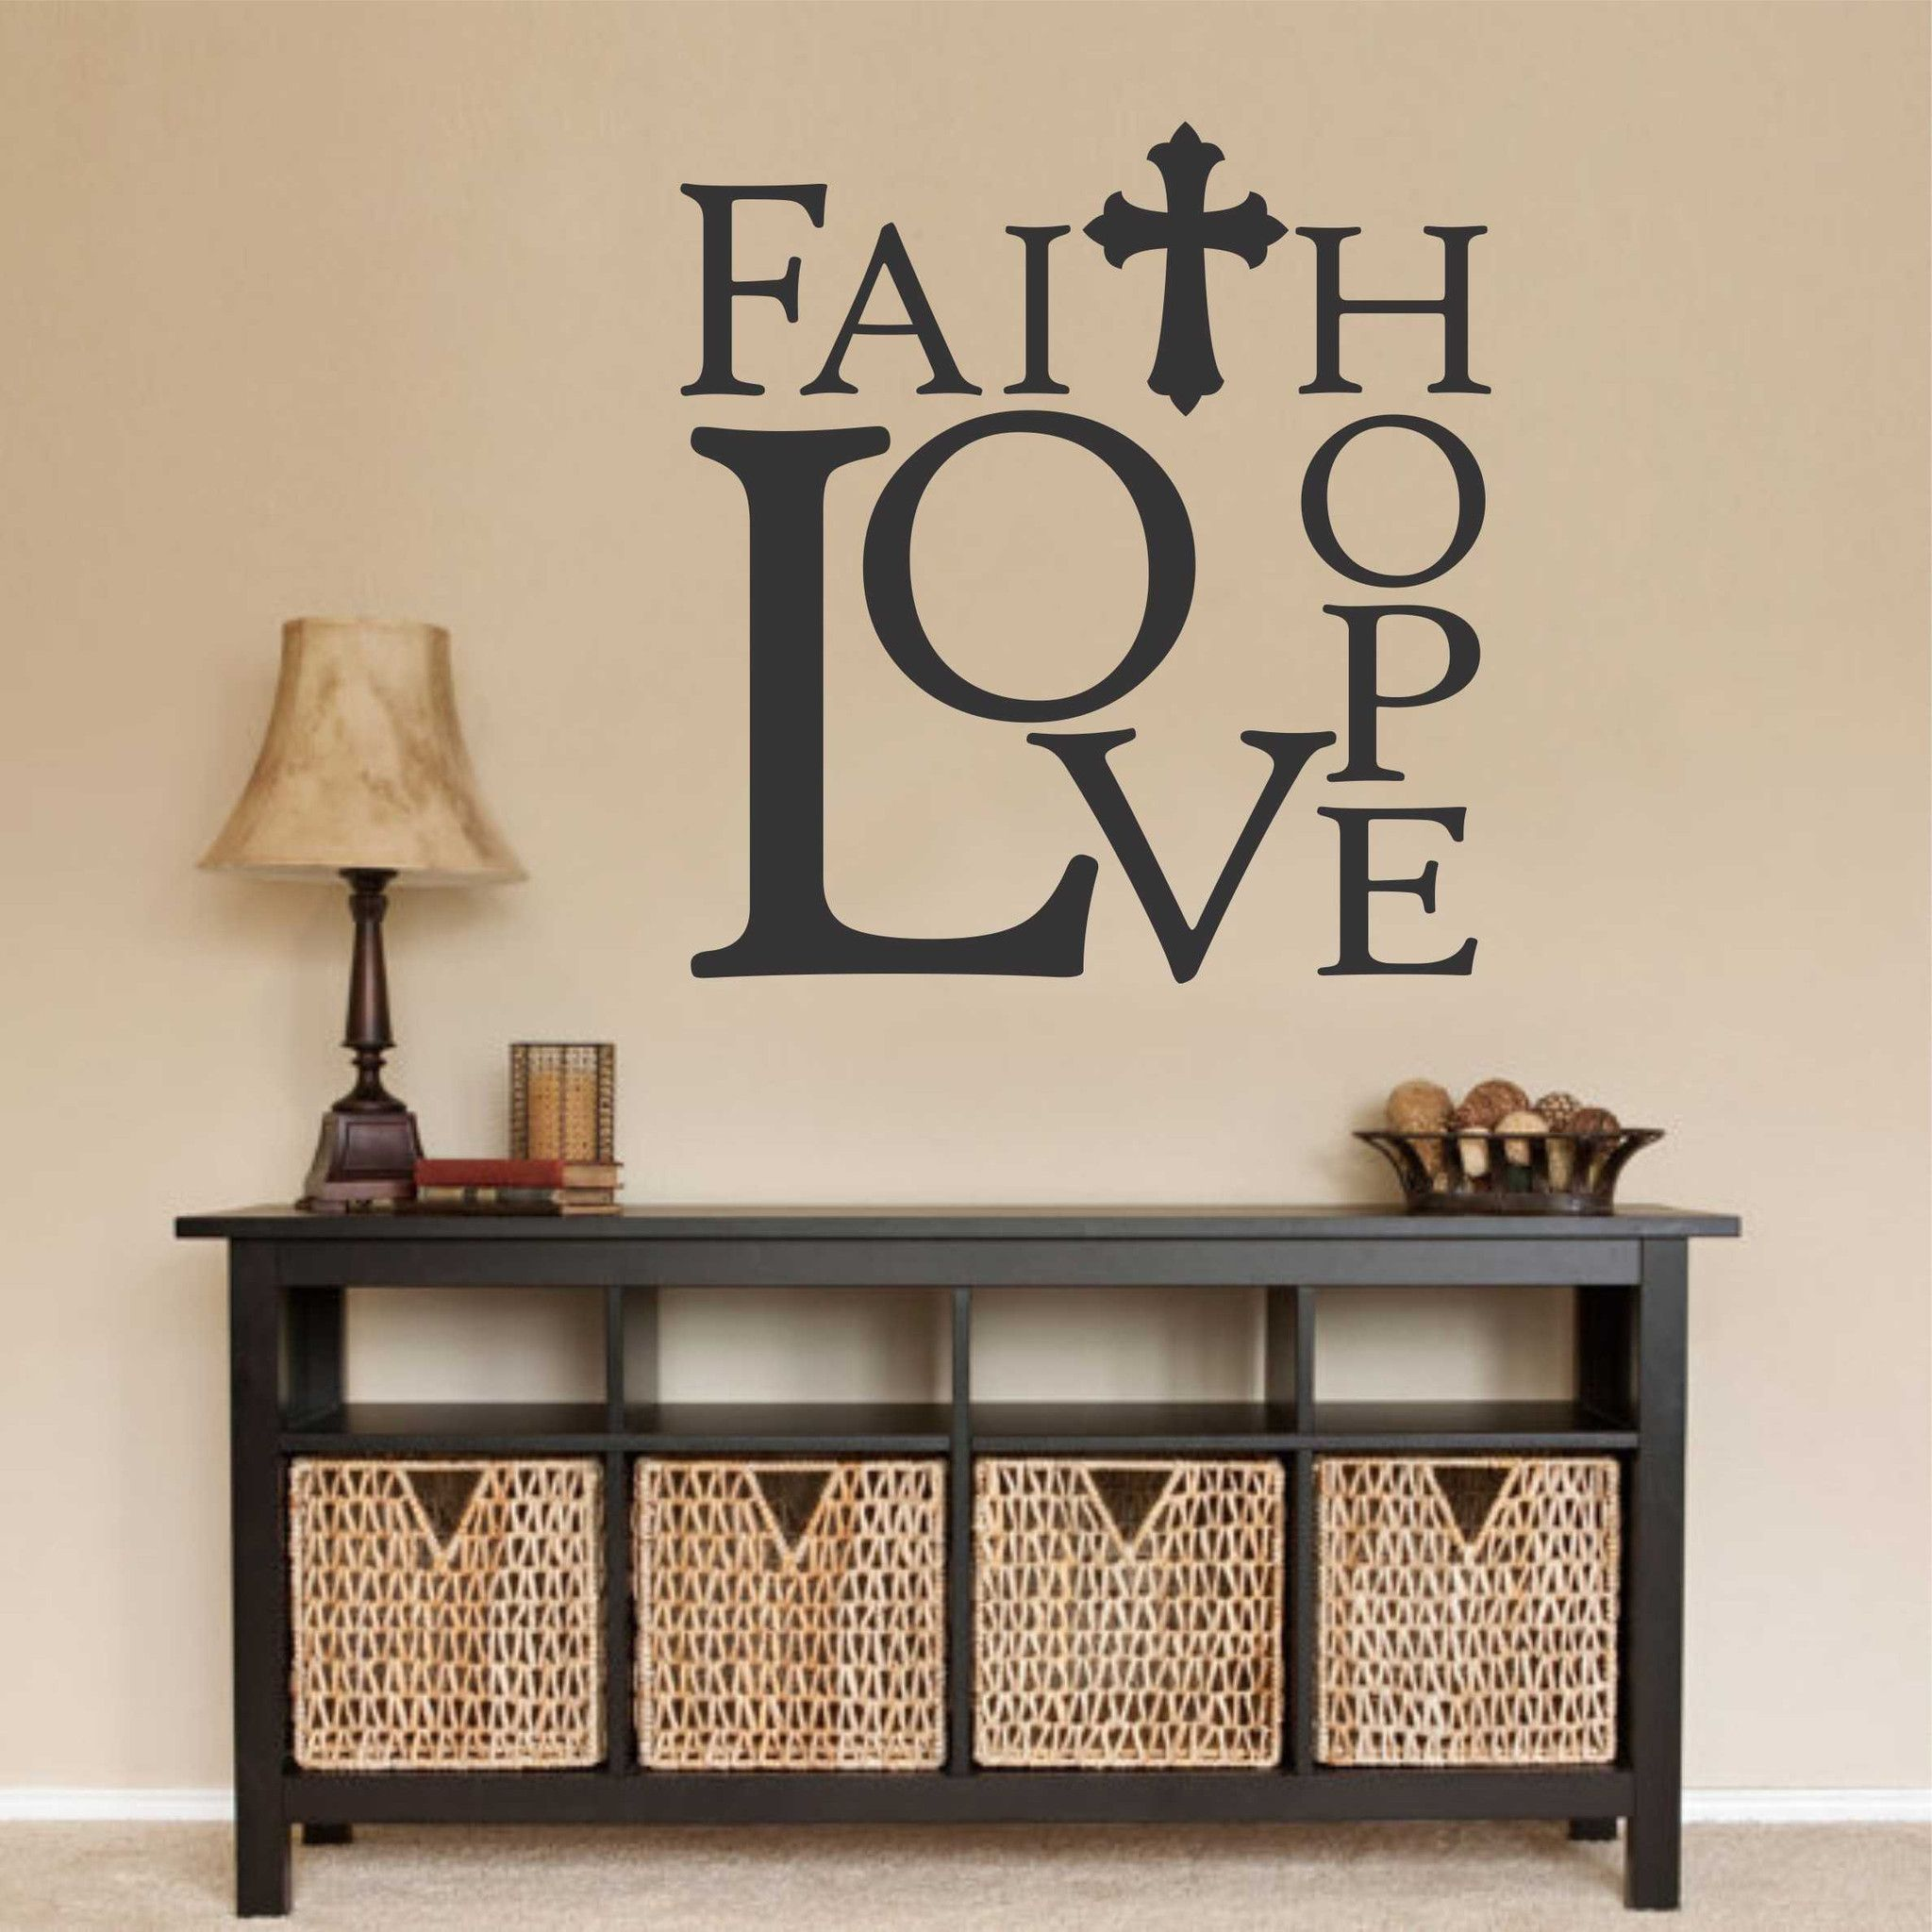 Faith hope love wall decal religious quote vinyl lettering in